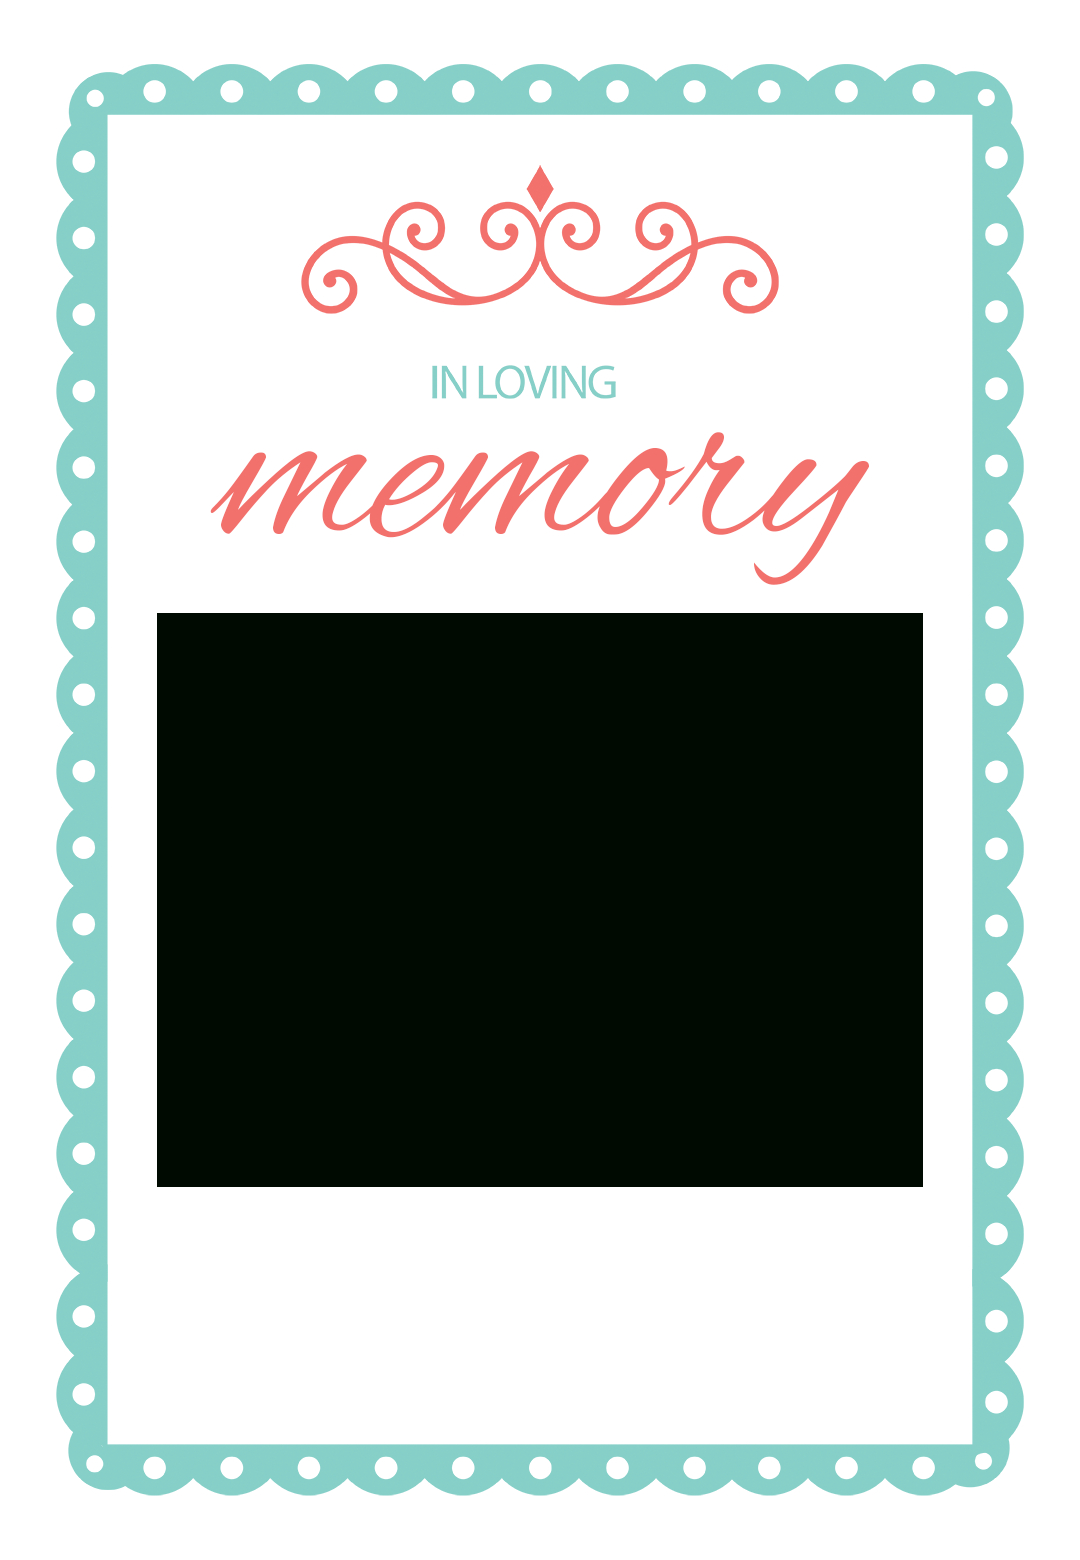 002 Free Memorial Card Template Best Ideas Templates With Regard To In Memory Cards Templates